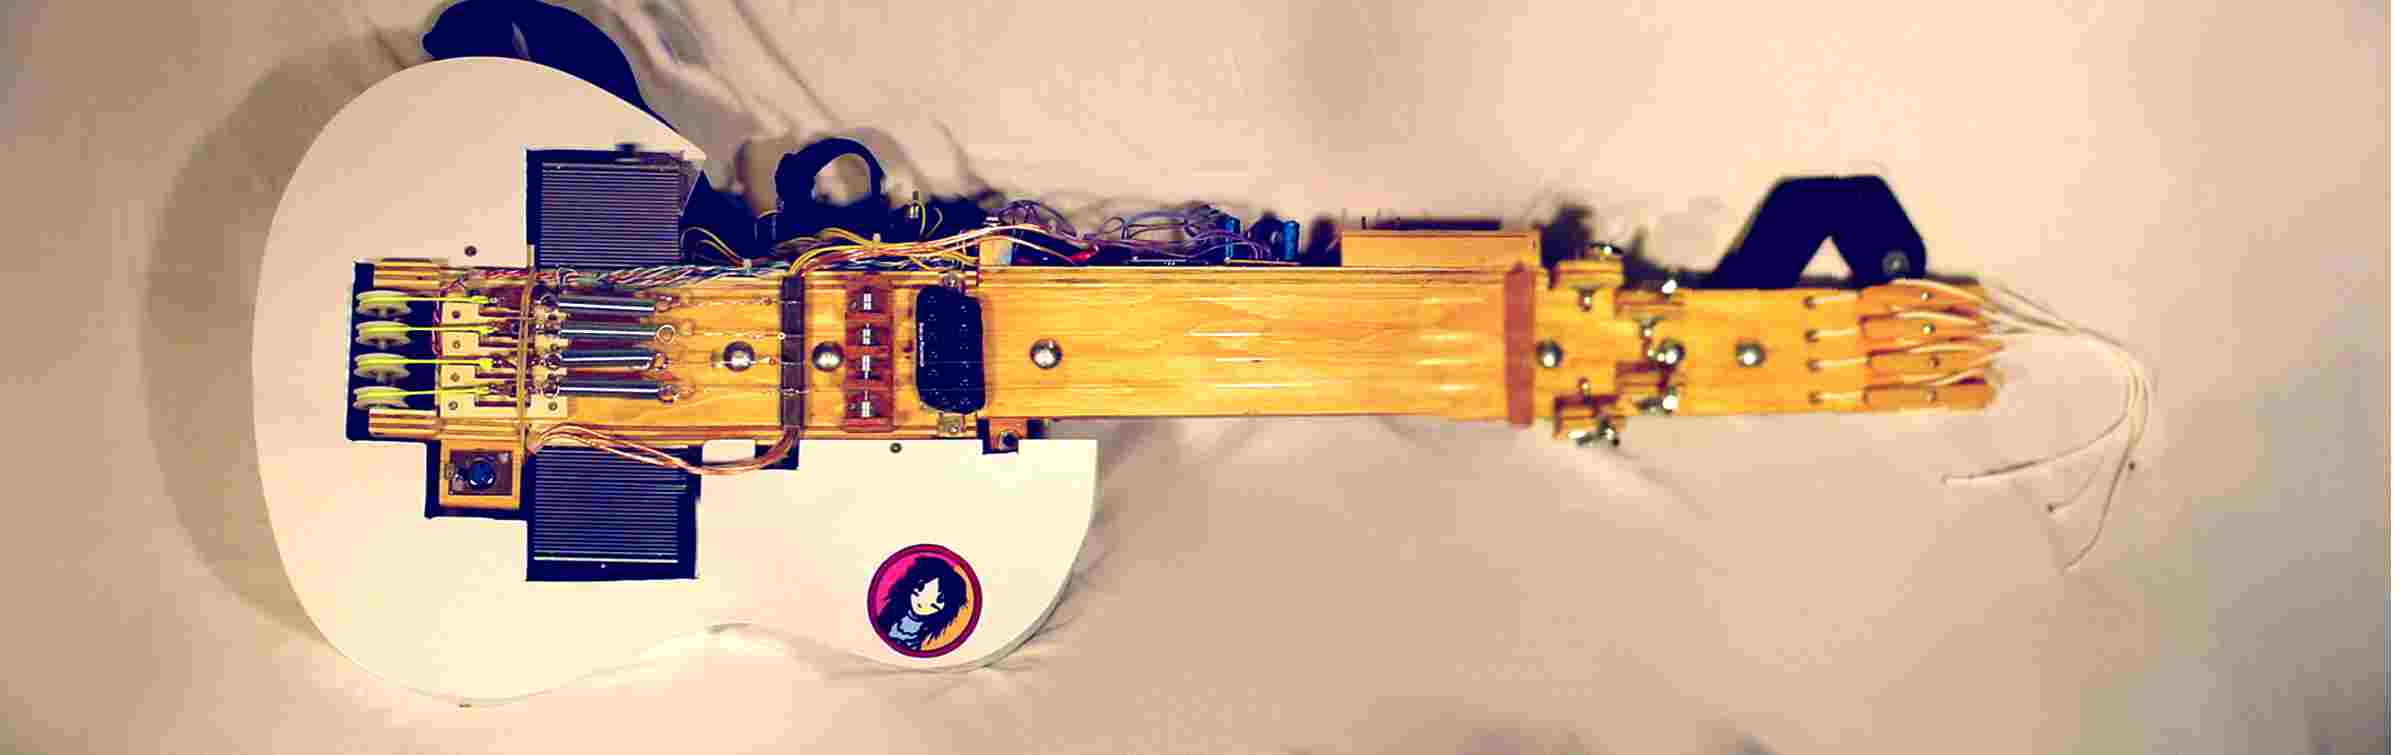 arduino based servoelectric guitar